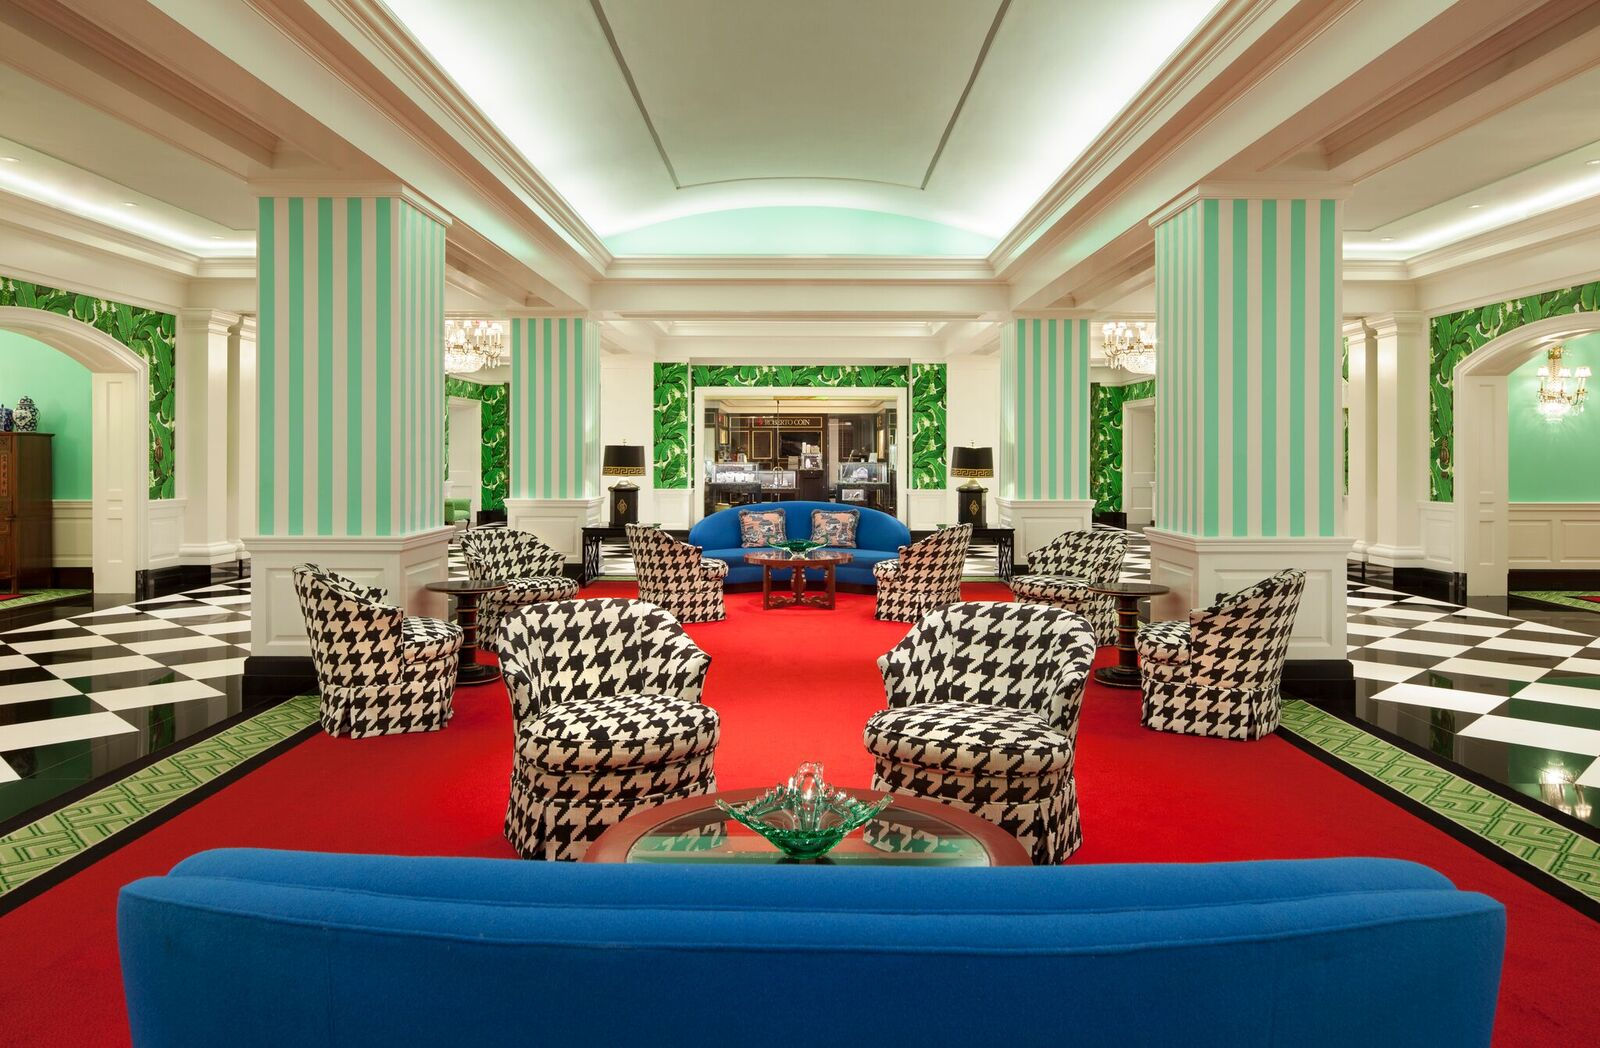 The hotel's main lobby is decorated in a bright palette of colors and furniture.{ }(Image: Courtesy The Greenbrier)